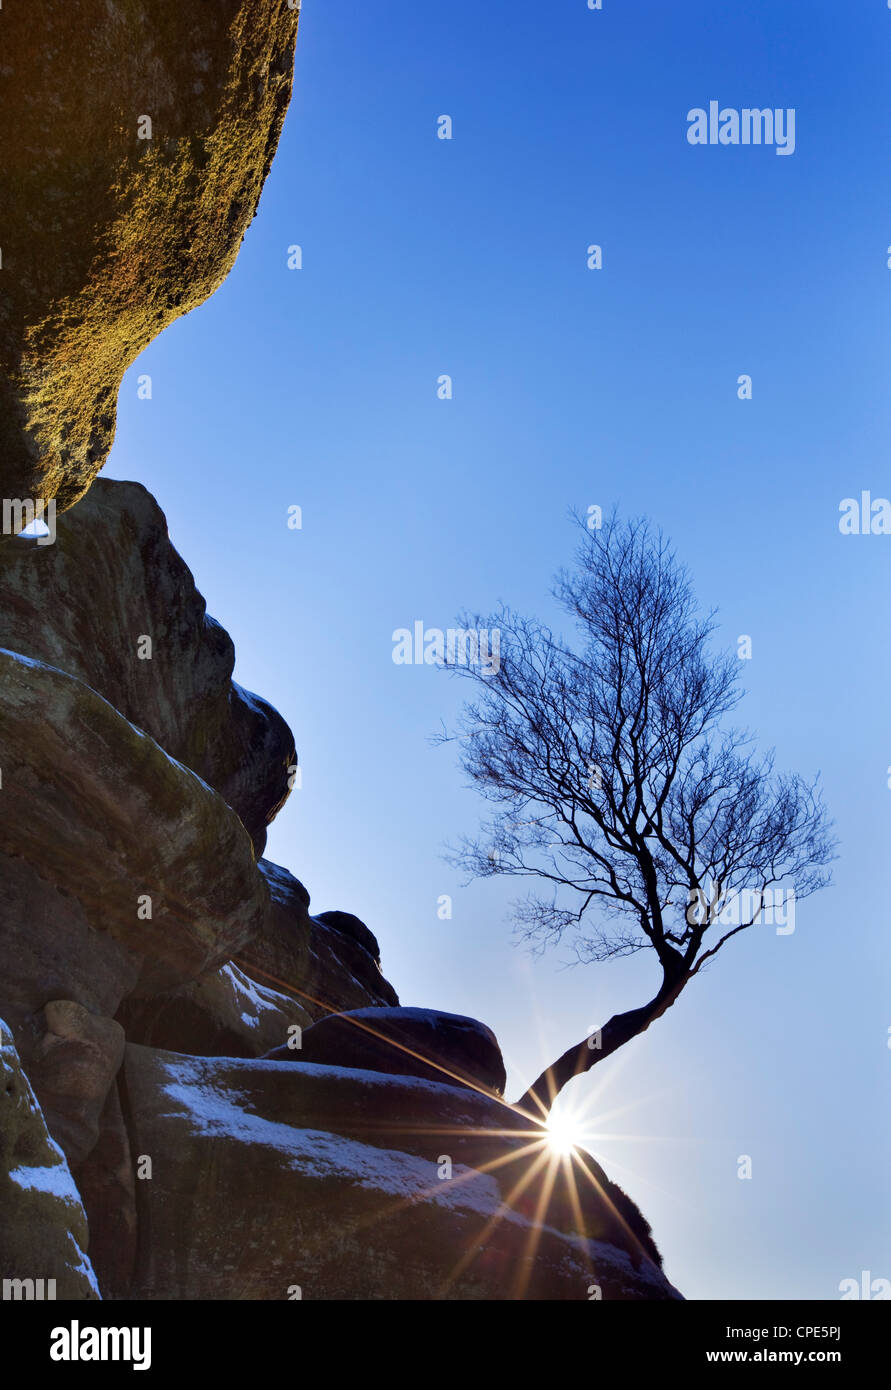 Sunburst behind a lone tree and a sprinkling of snow at Brimham Rocks, Yorkshire, England, United Kingdom, Europe - Stock Image